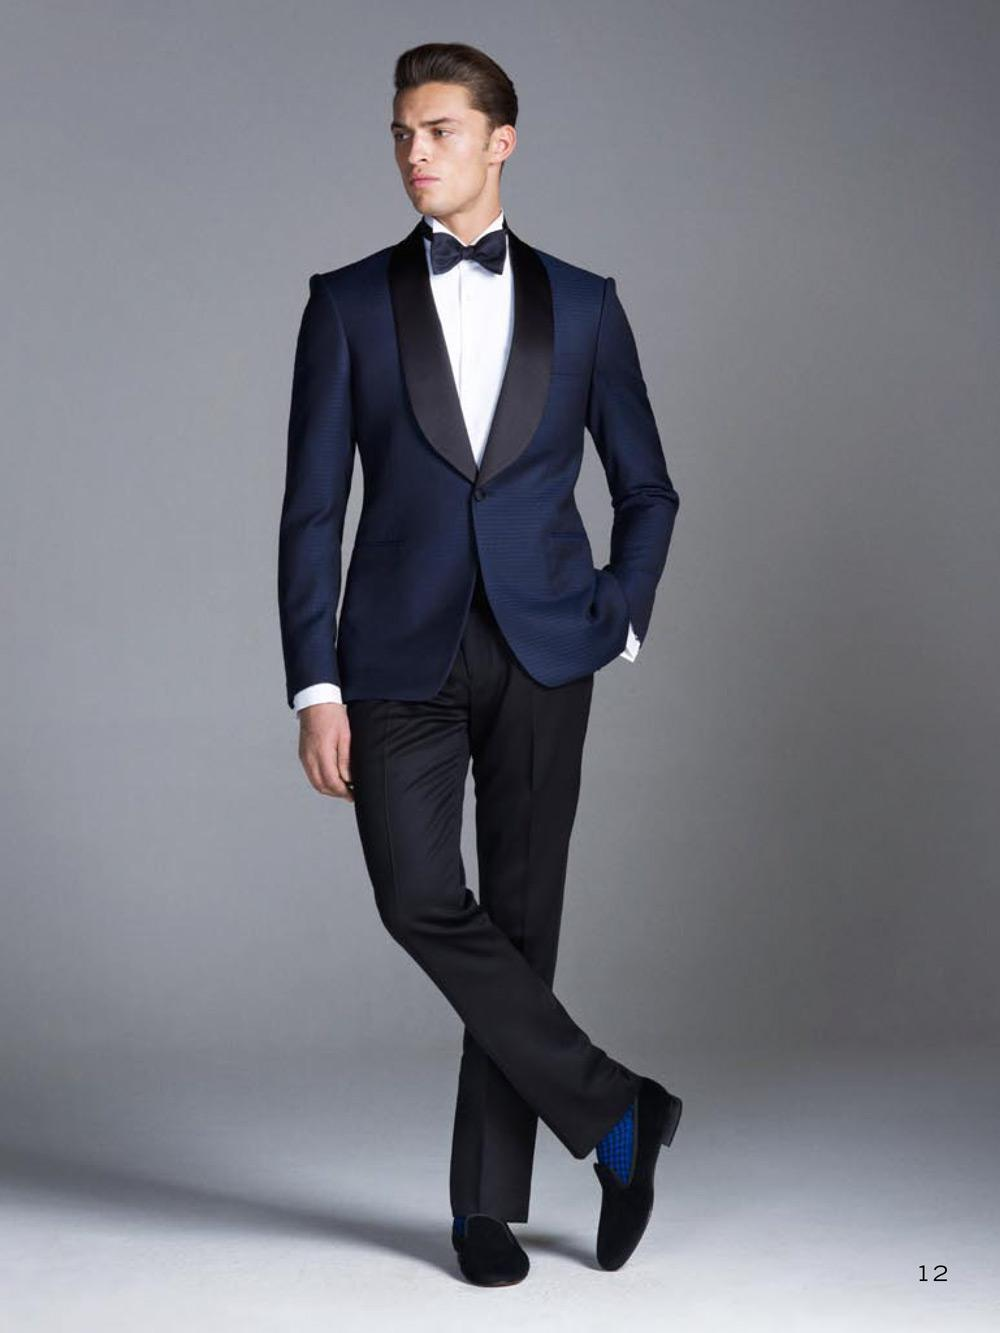 2015 Wedding Suits Navy Blue Groomsmen Best Mens Wedding Prom Formal Suits  Shawl Lapel Custom Made Groom Tuxedos Jacket+Pants+Bow Tie Canada 2019 From